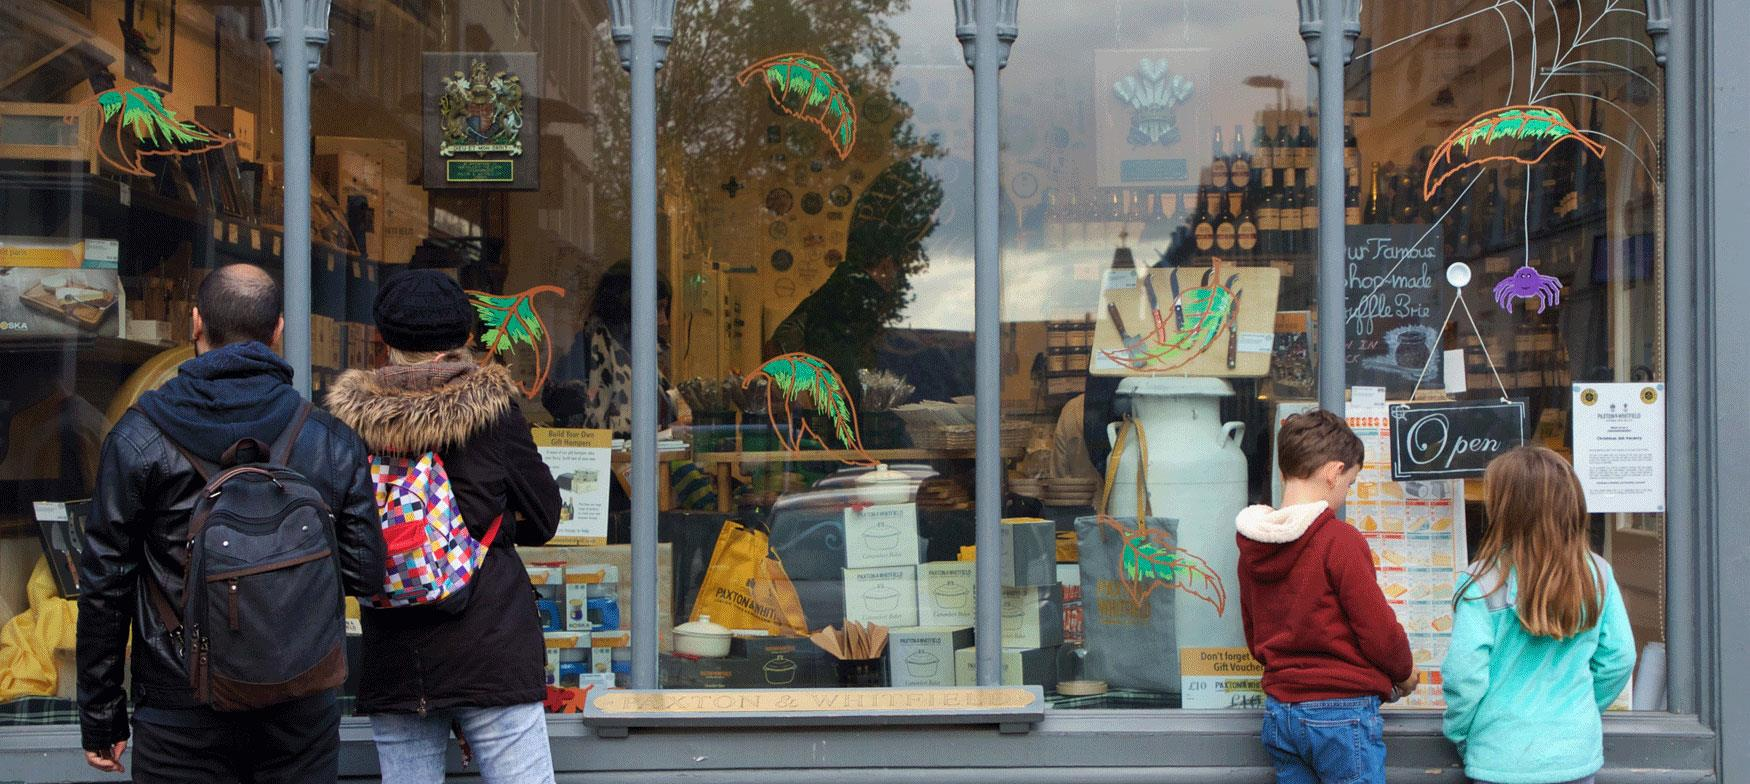 Uncover hidden treasures within the independent stores